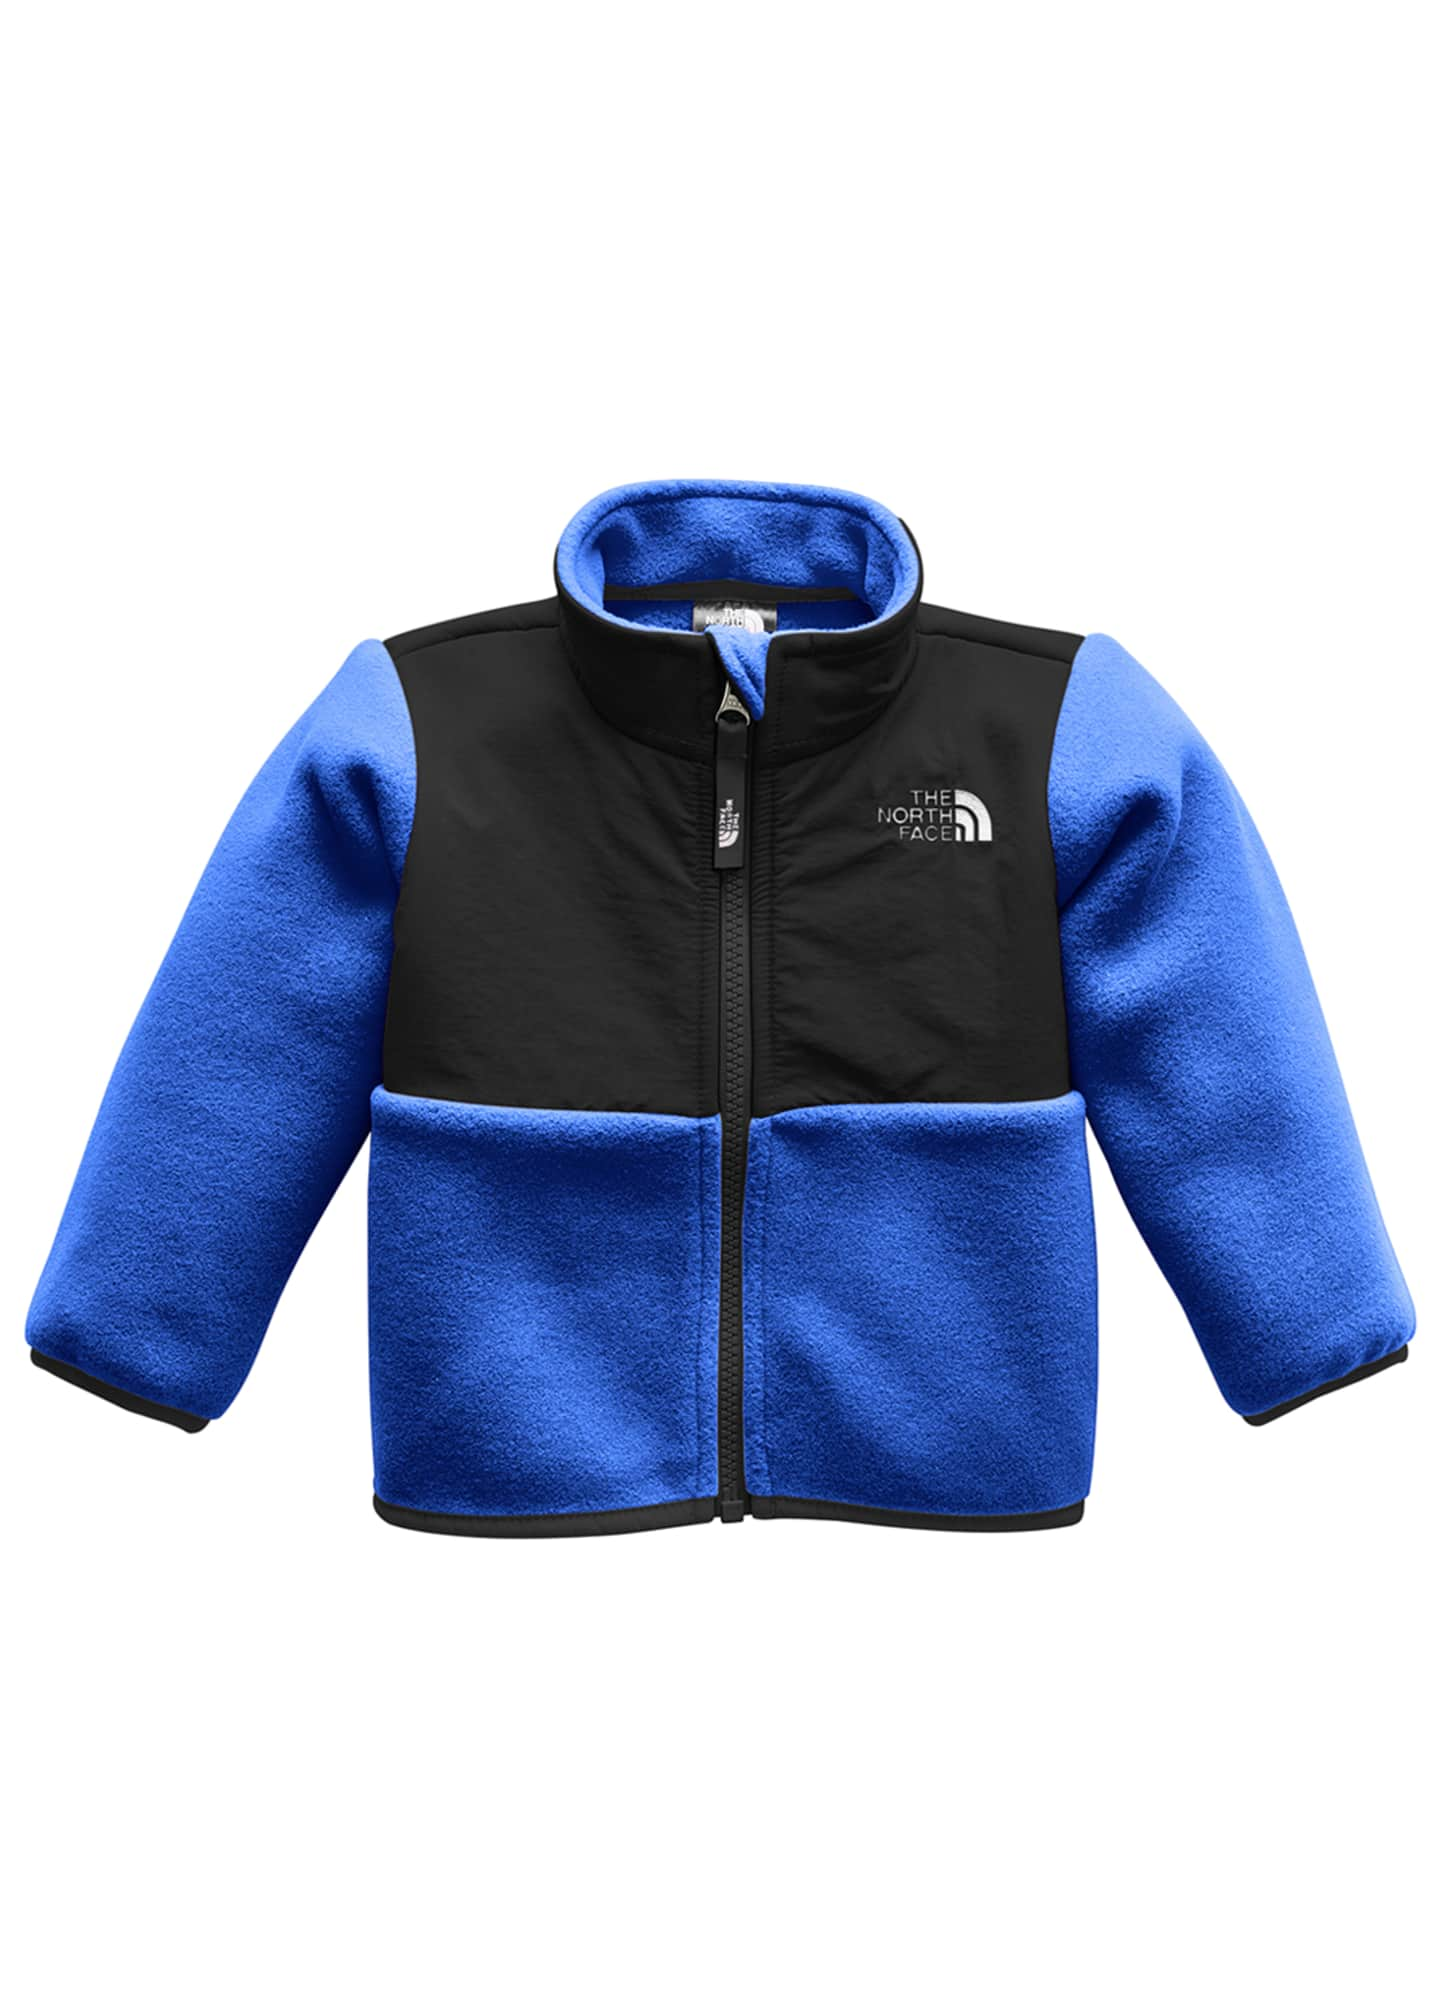 The North Face Boy's Denali Two-Tone Fleece Jacket,